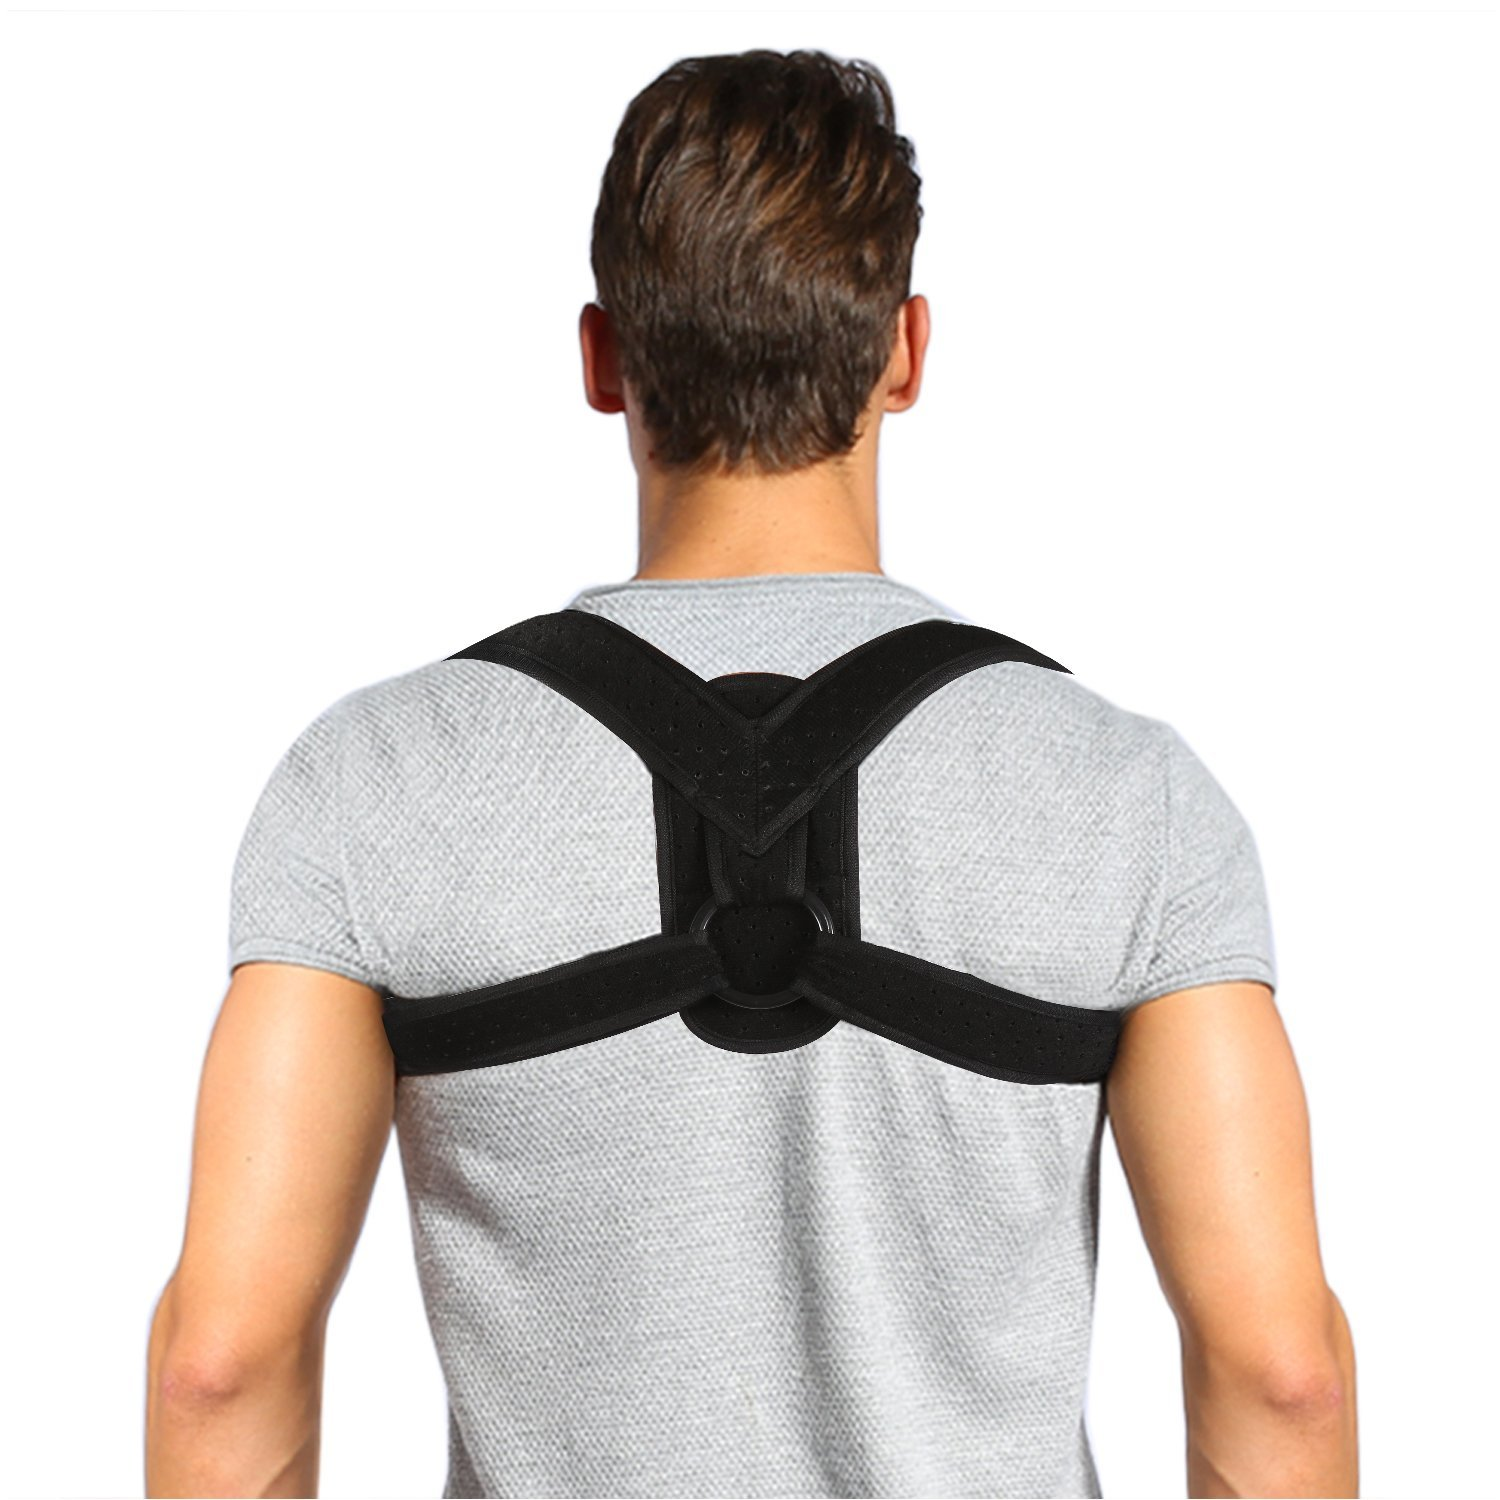 Yosoo Posture Corrector Brace and Clavicle Support Straightener for Upper Back Shoulder Forward Head Neck Aid - Walmart.com